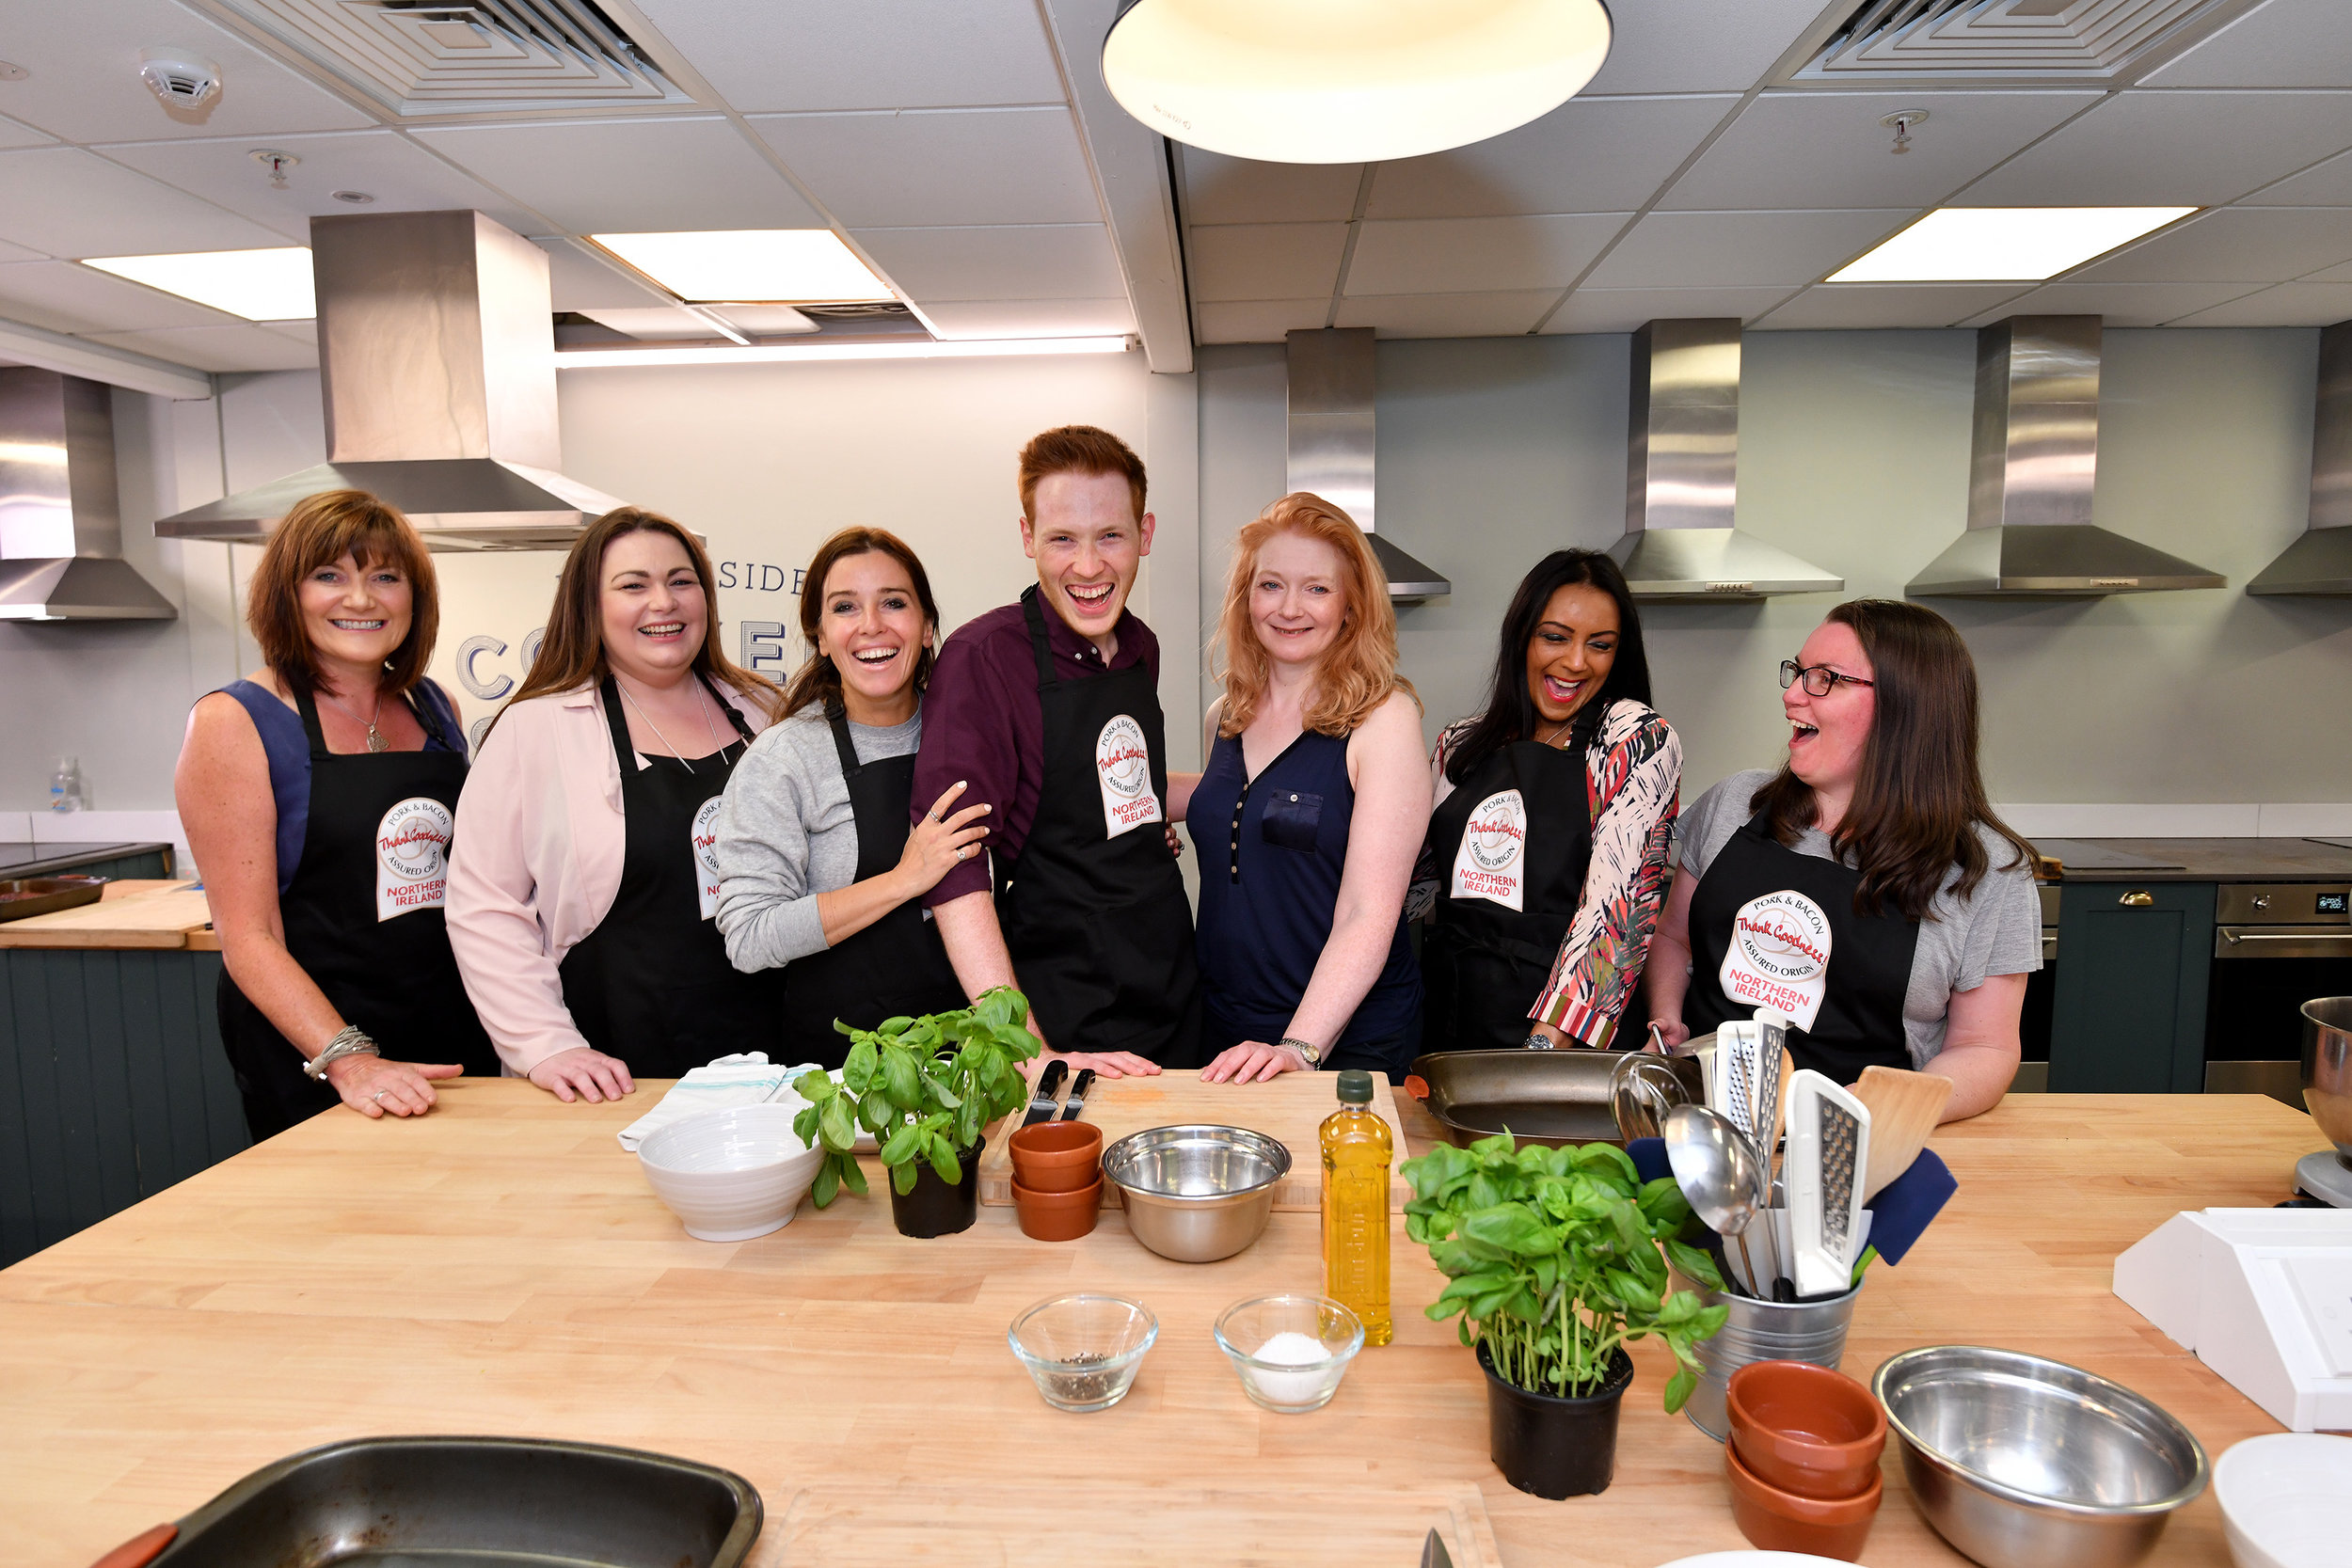 I was joined by fellow bloggers on the challenge including:  Jayne aka @lifewiththedempsters, Hama aka @indianblonde, Lynne aka @eatingideas, Zoe from @belfastlive and of course Andrew is at @cakesmyth. Check them out on Insta!